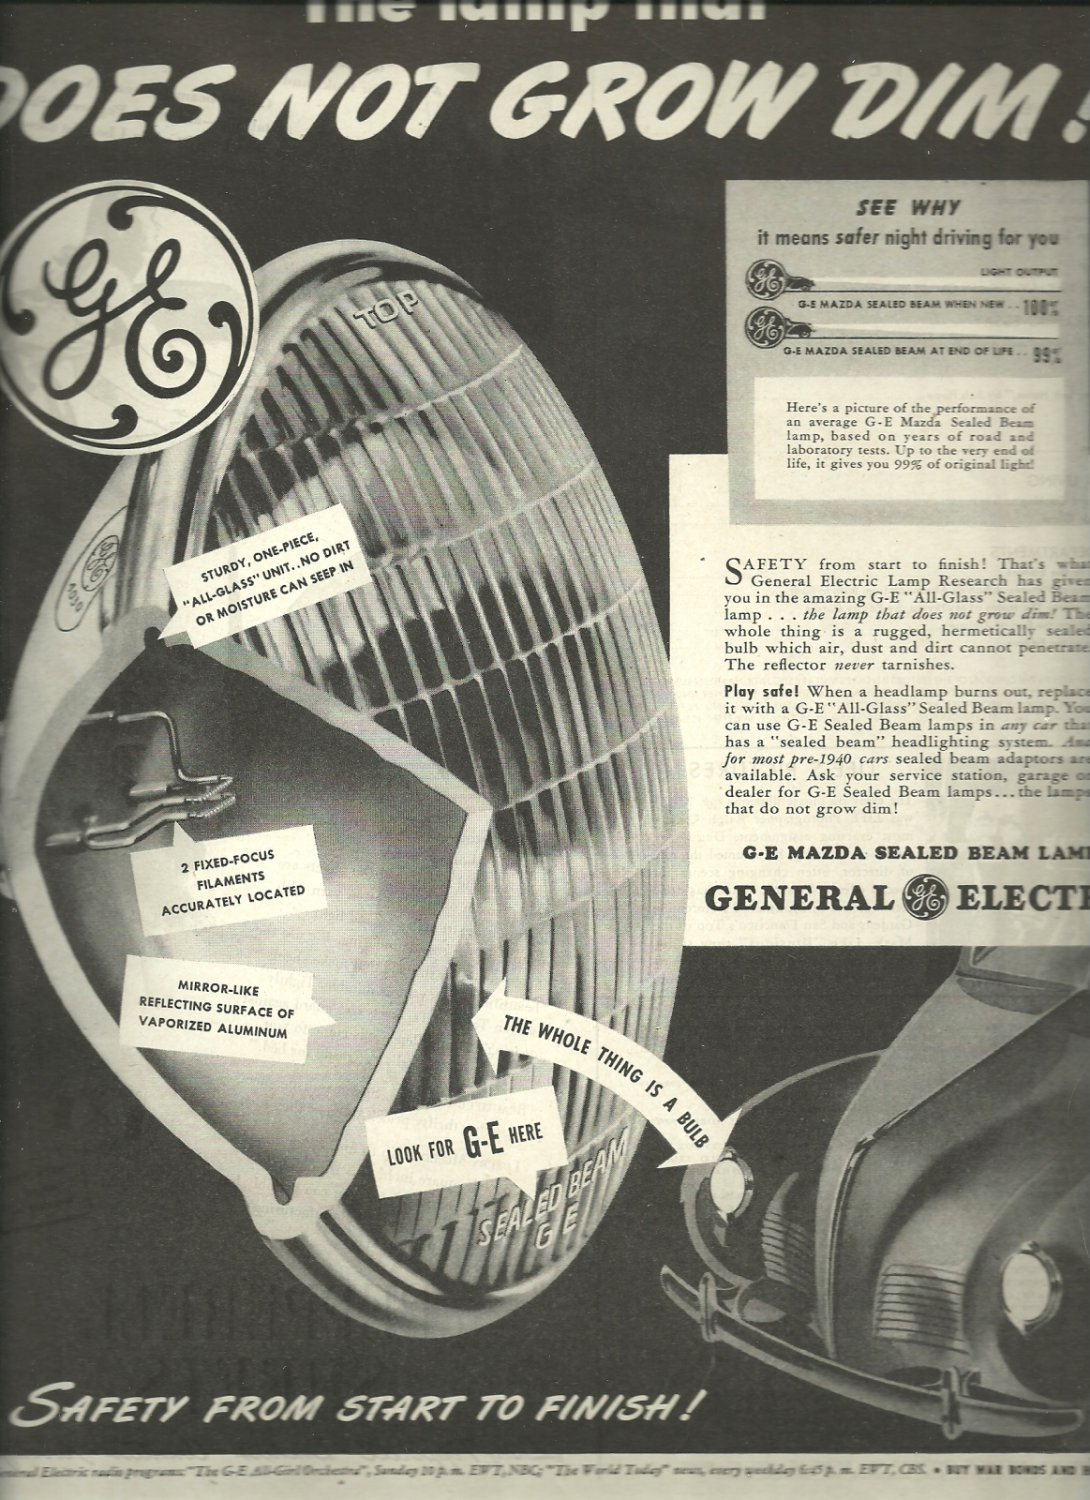 1944 General Electric  G-E Mazda sealed beam Lights ad (# 3278)